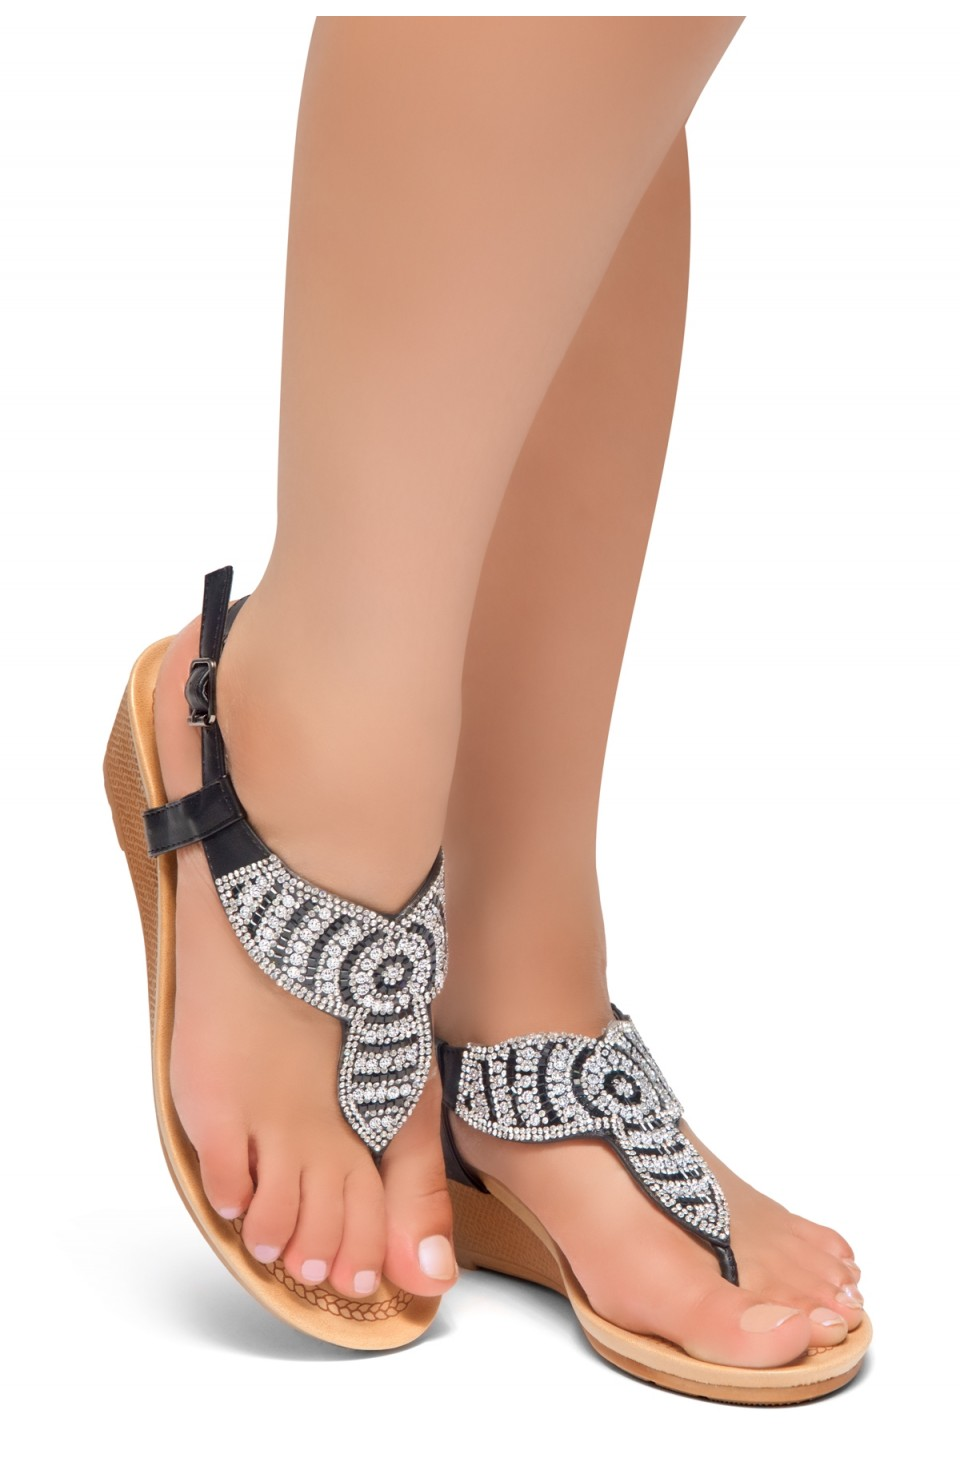 HerStyle Take Over- Rhinestone Details Vamp, Ankle Strap Open Toe Open Back Wedge Sandals (Black)